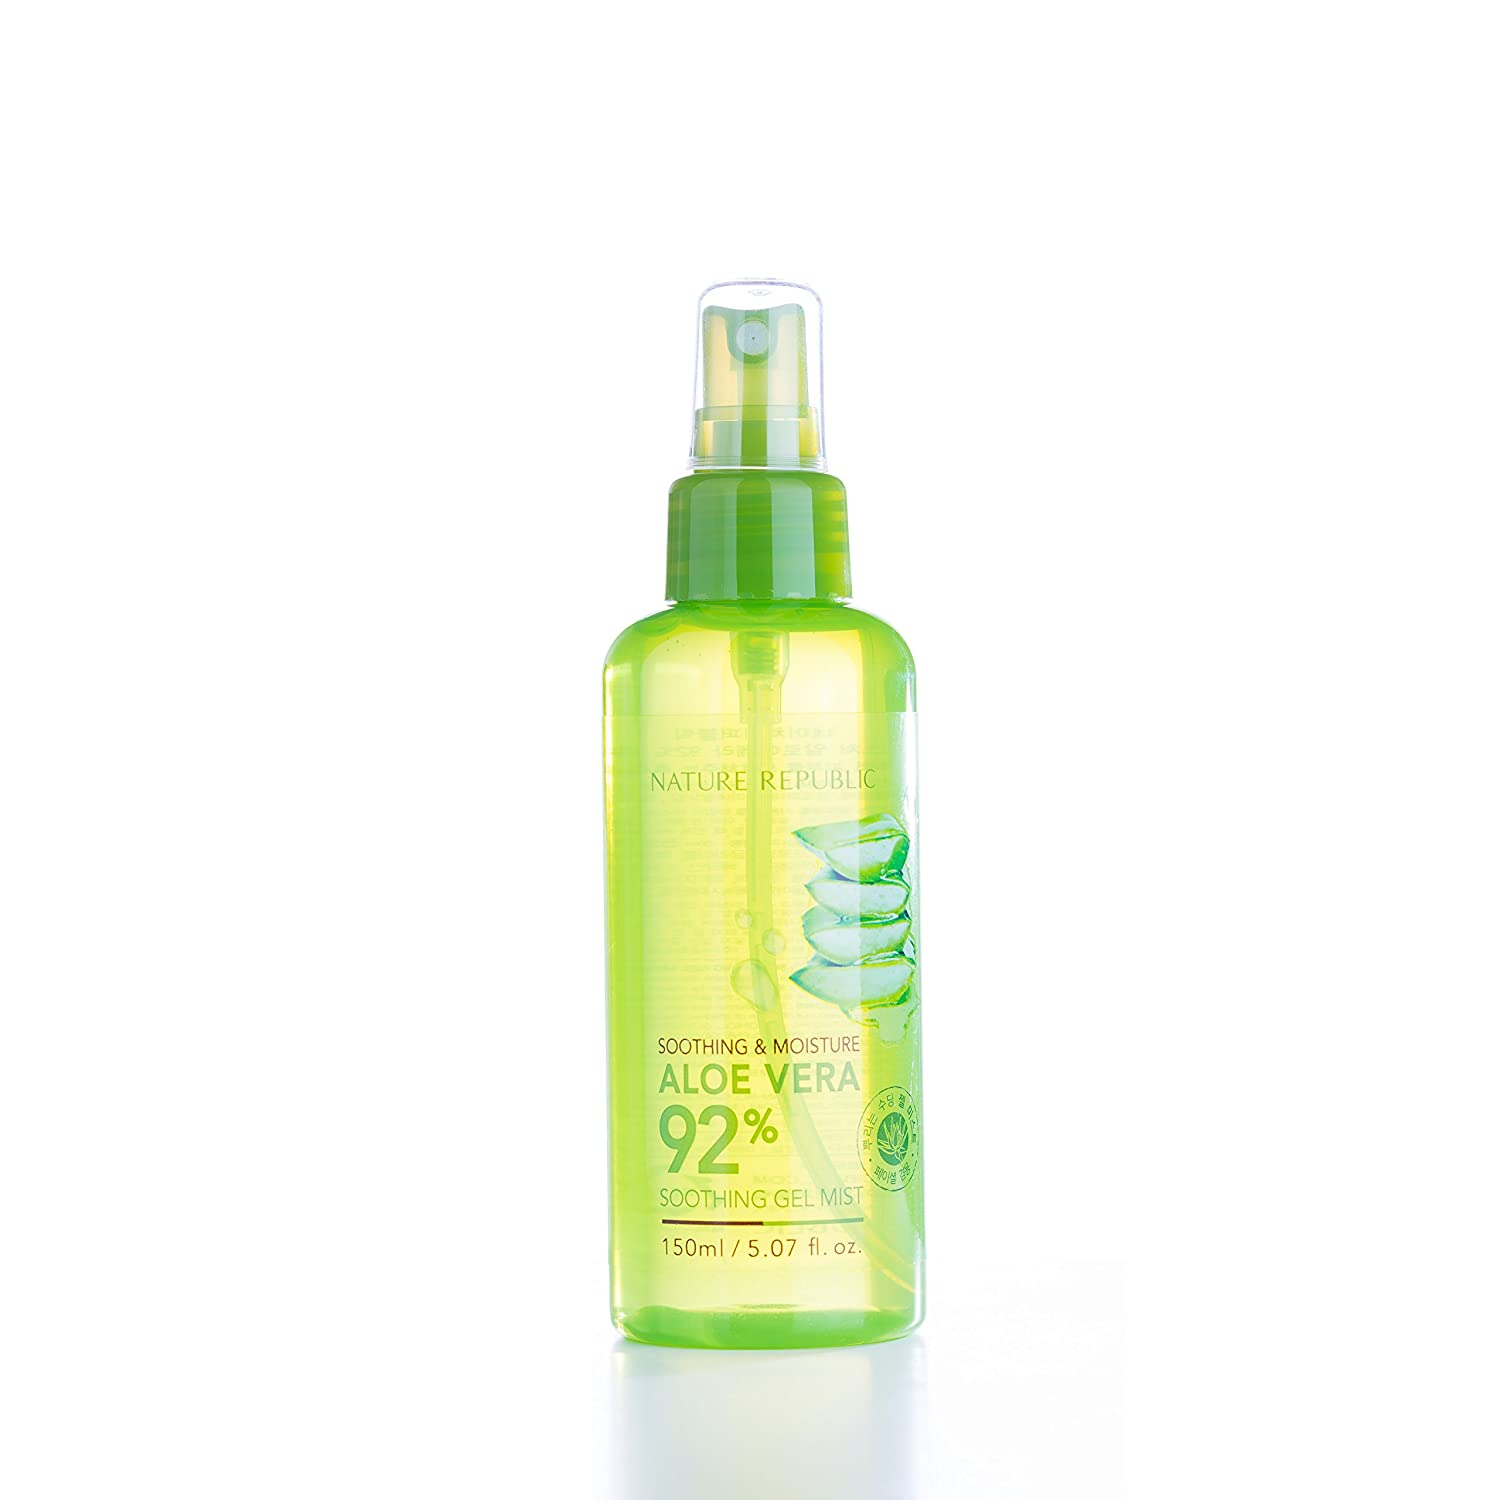 Nature Republic Soothing & Moisture Aloe Vera 92% Gel Mist, 150 Gram Chok Chok NM7468